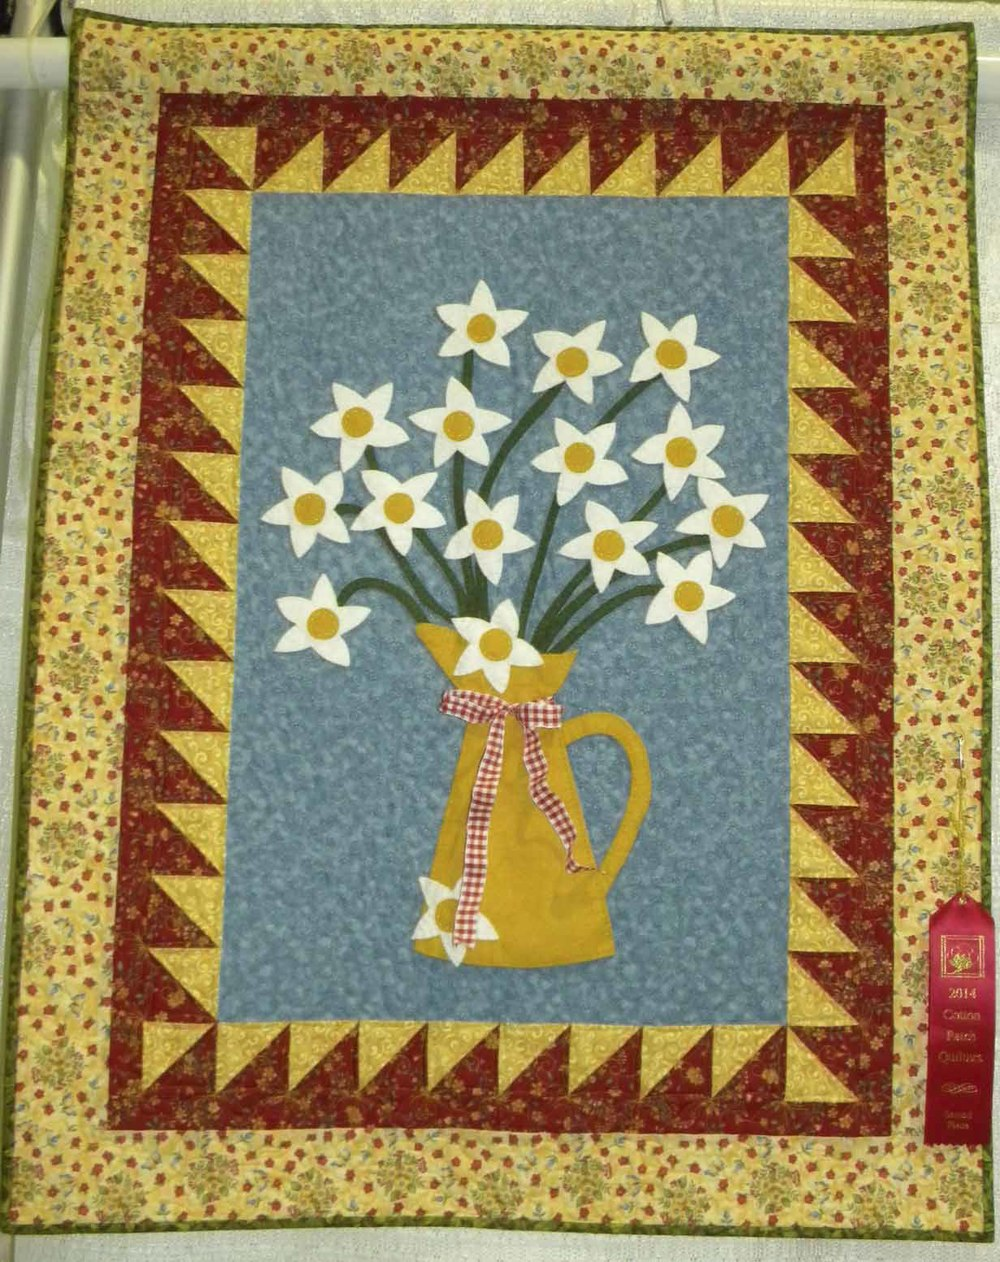 2nd Group.  Pitcher of Daisies by CeCe Westerfield